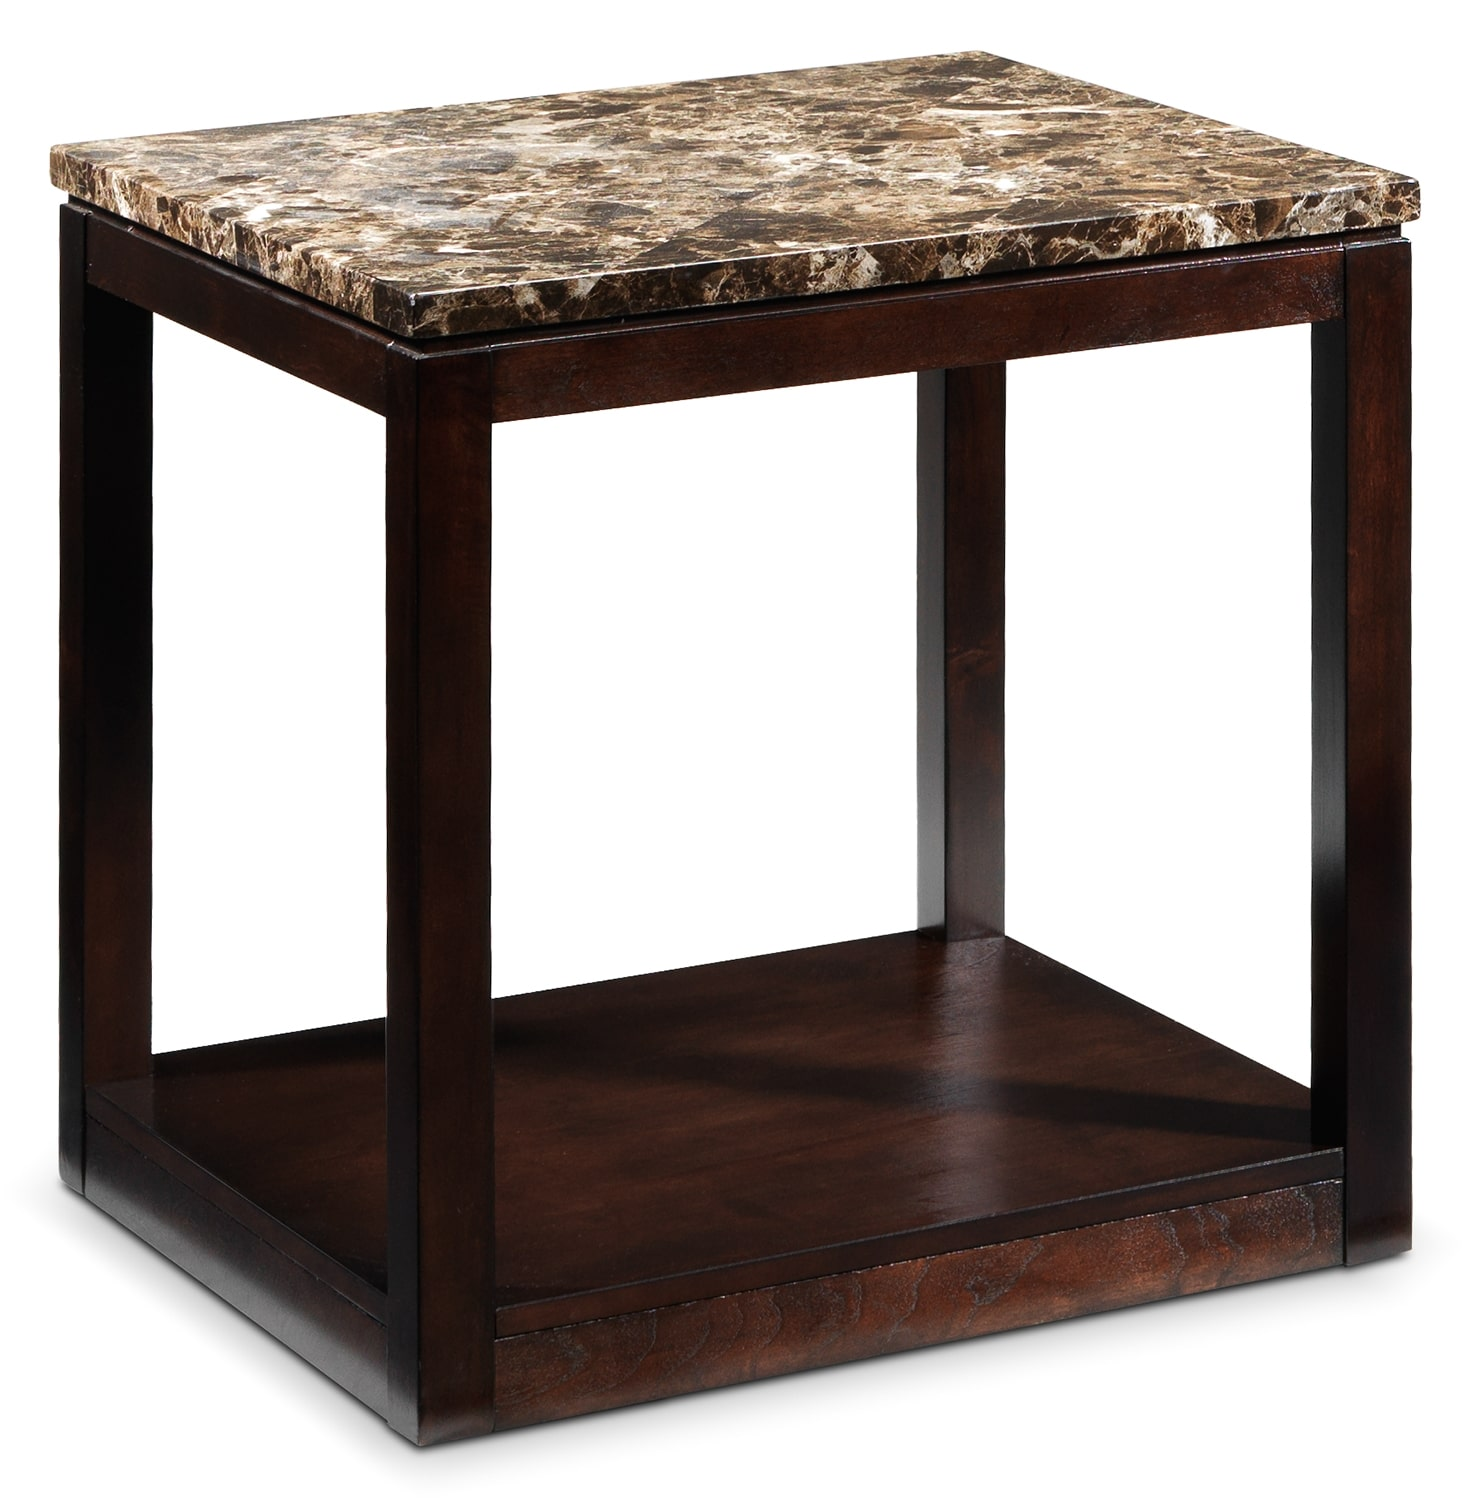 Spark End Table - Brown